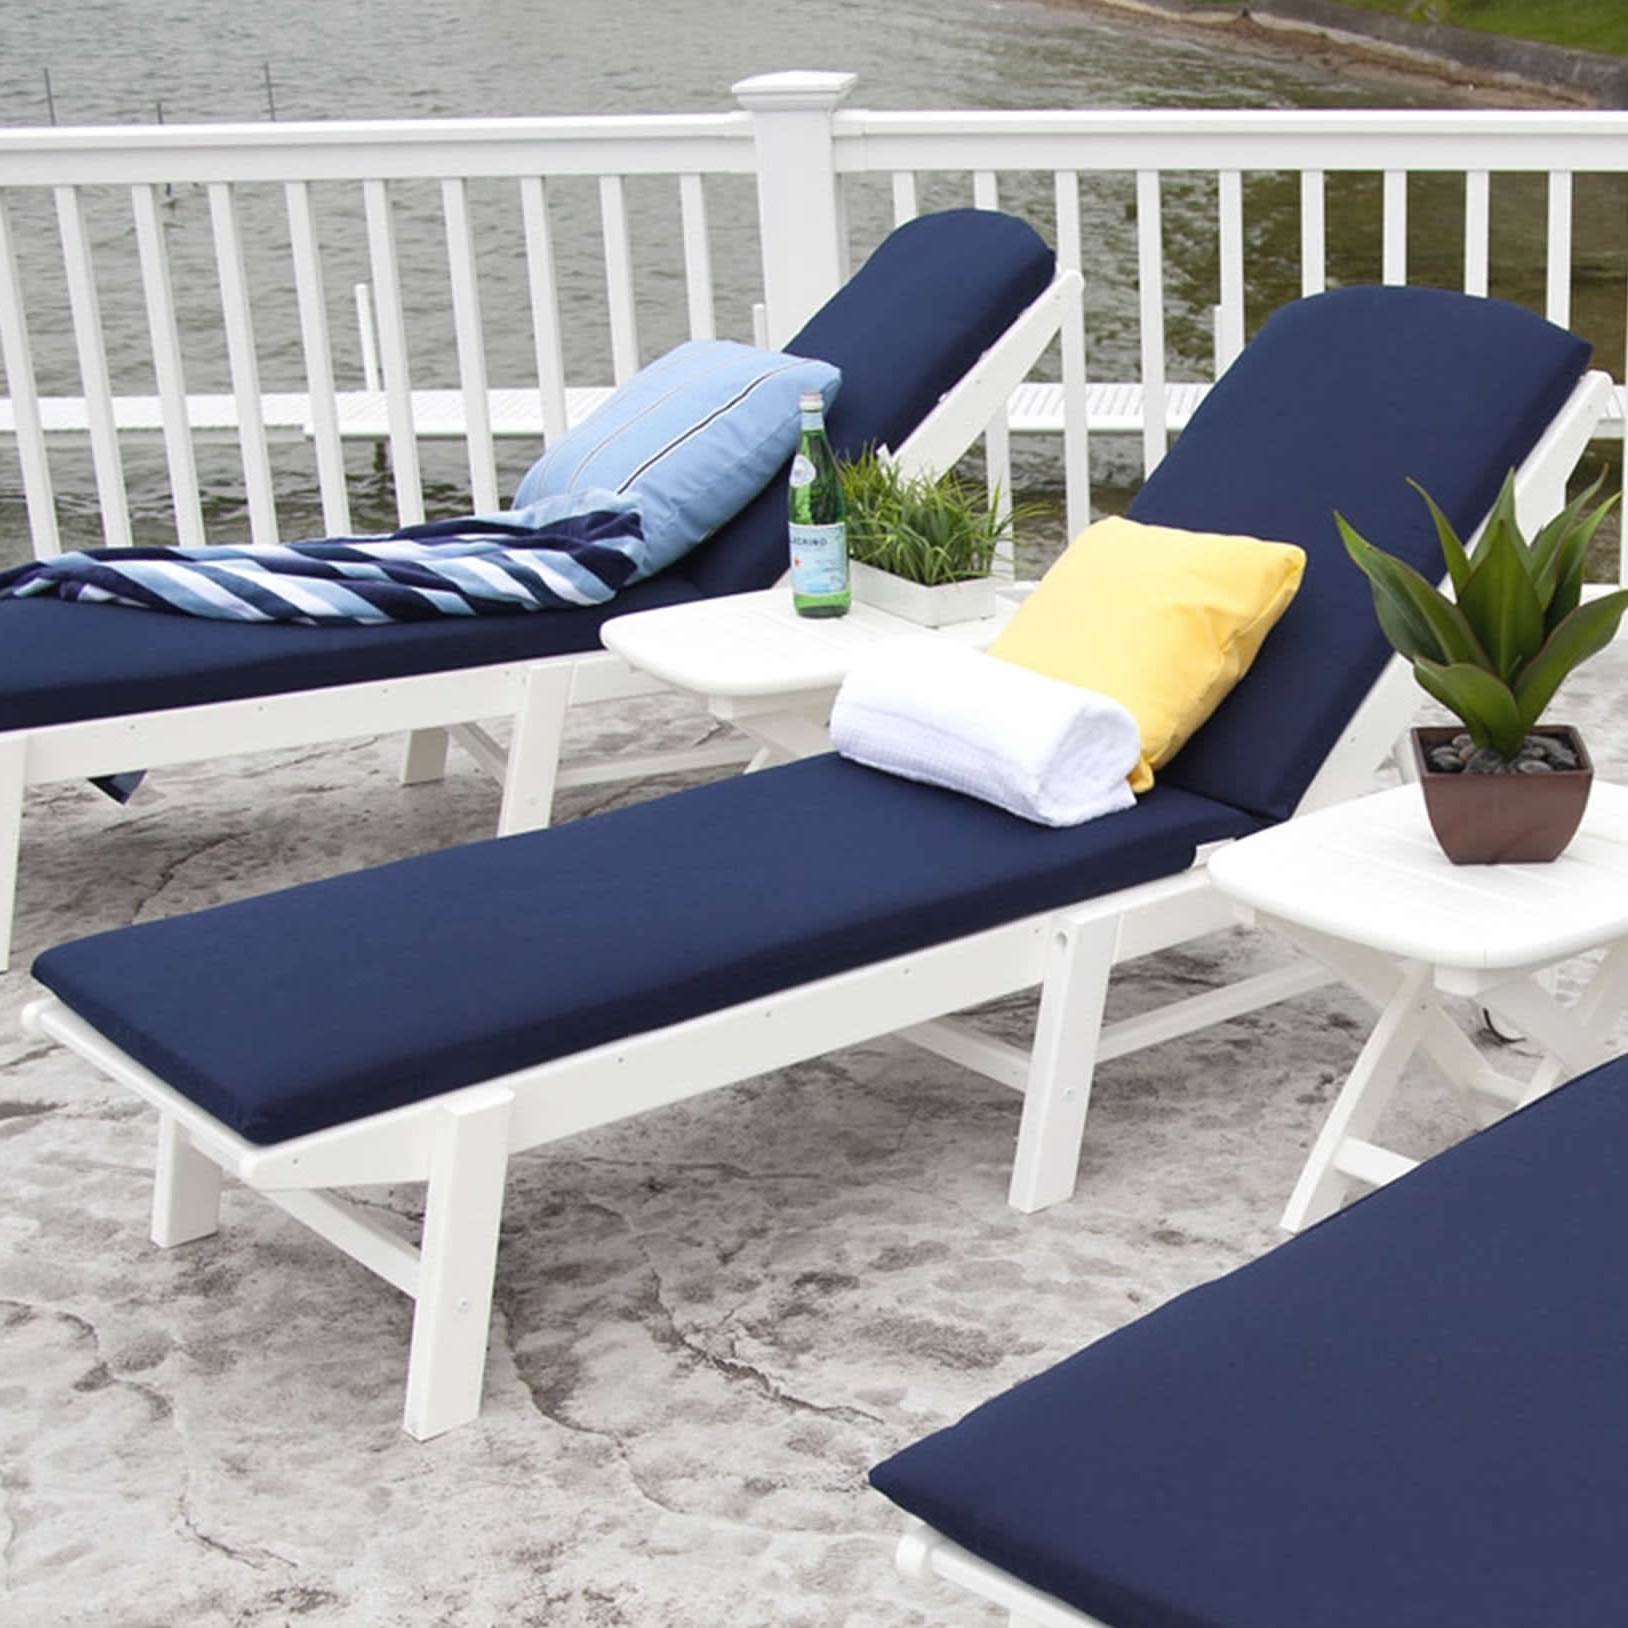 Chaise Lounge Cushions Pertaining To Favorite Polywood Nautical Chaise Lounge Cushions (View 10 of 15)